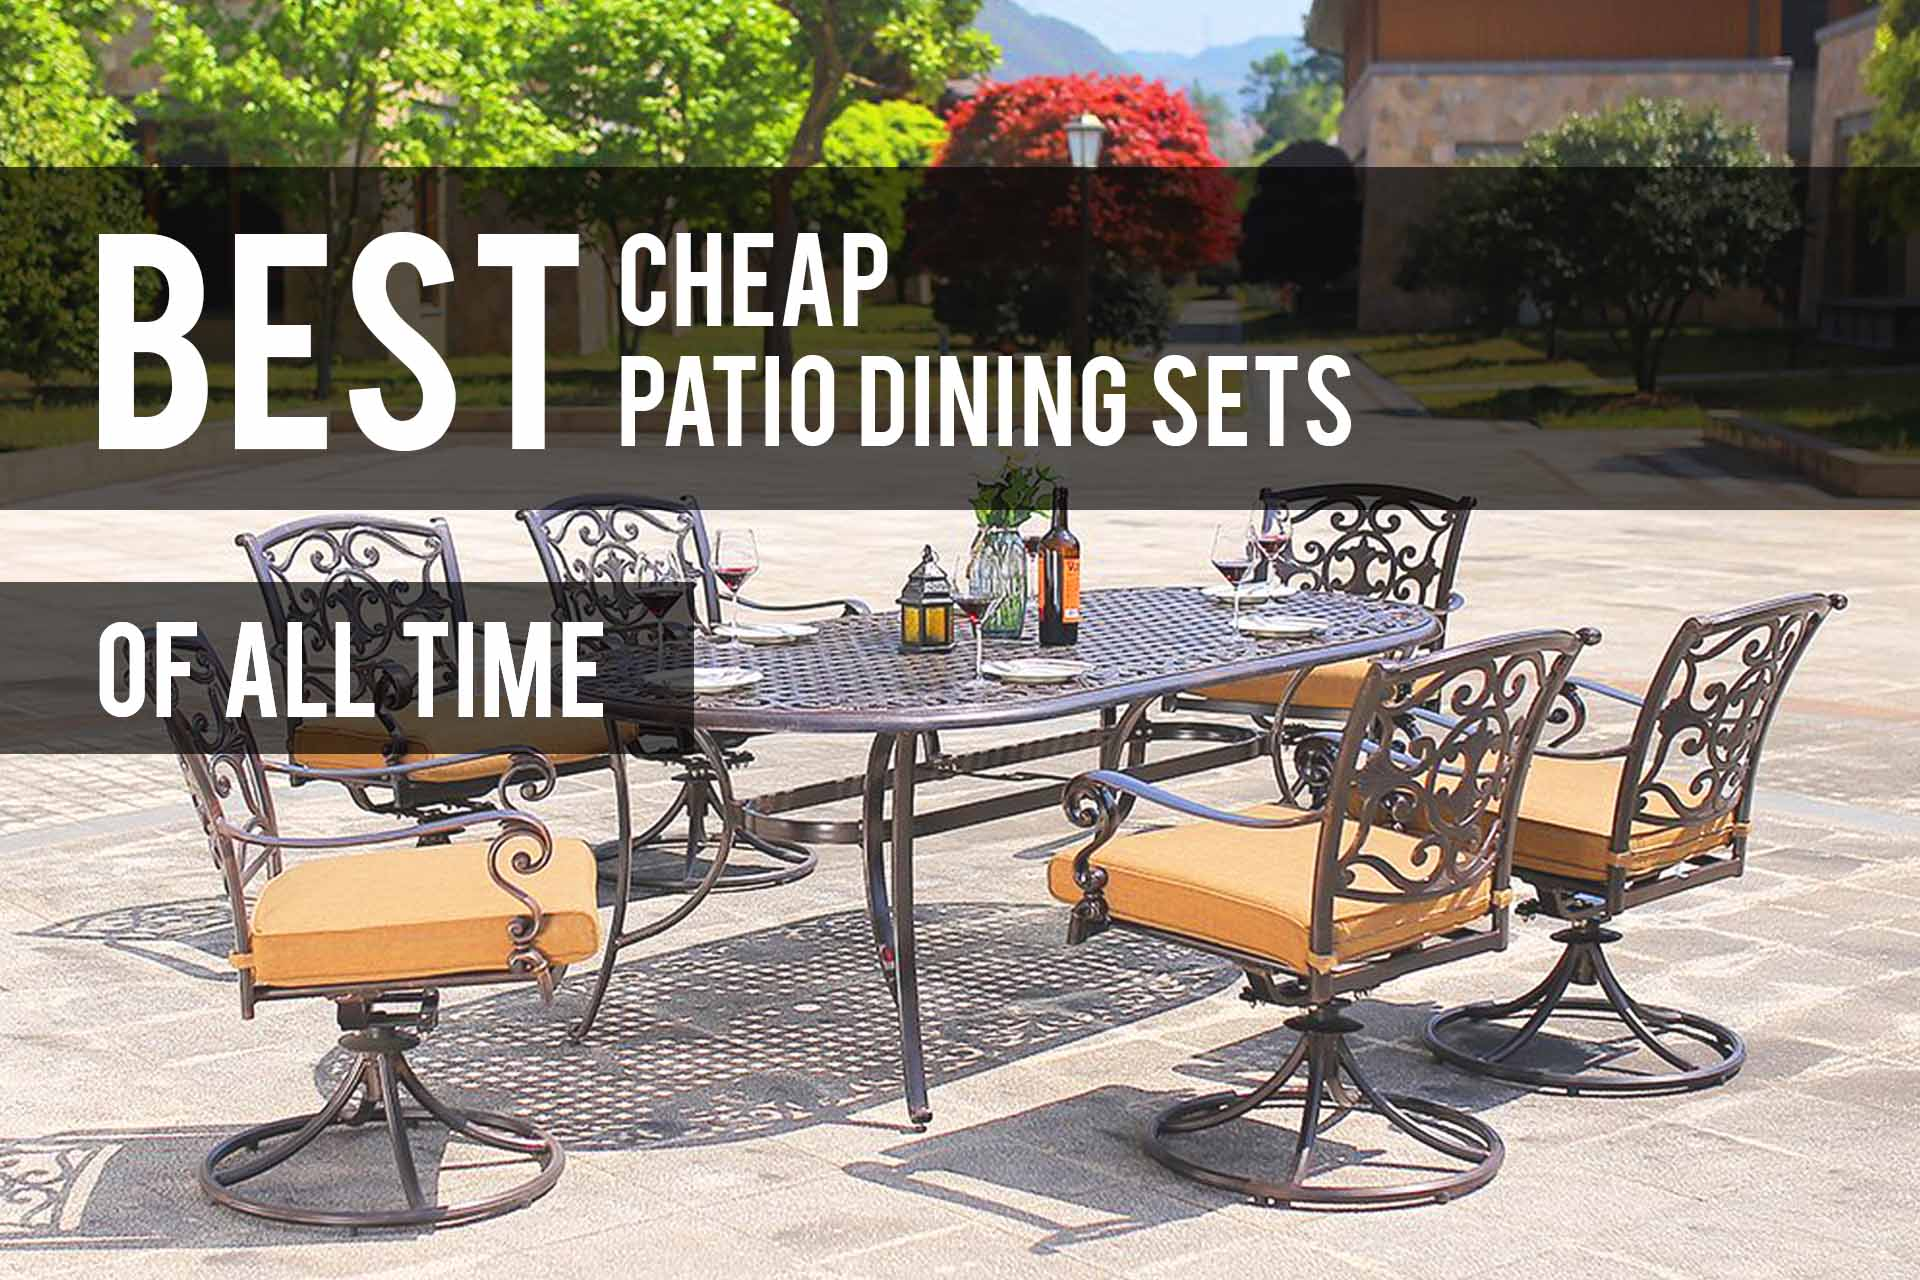 best cheap patio dining sets 2019 reviews the patio pro. Black Bedroom Furniture Sets. Home Design Ideas